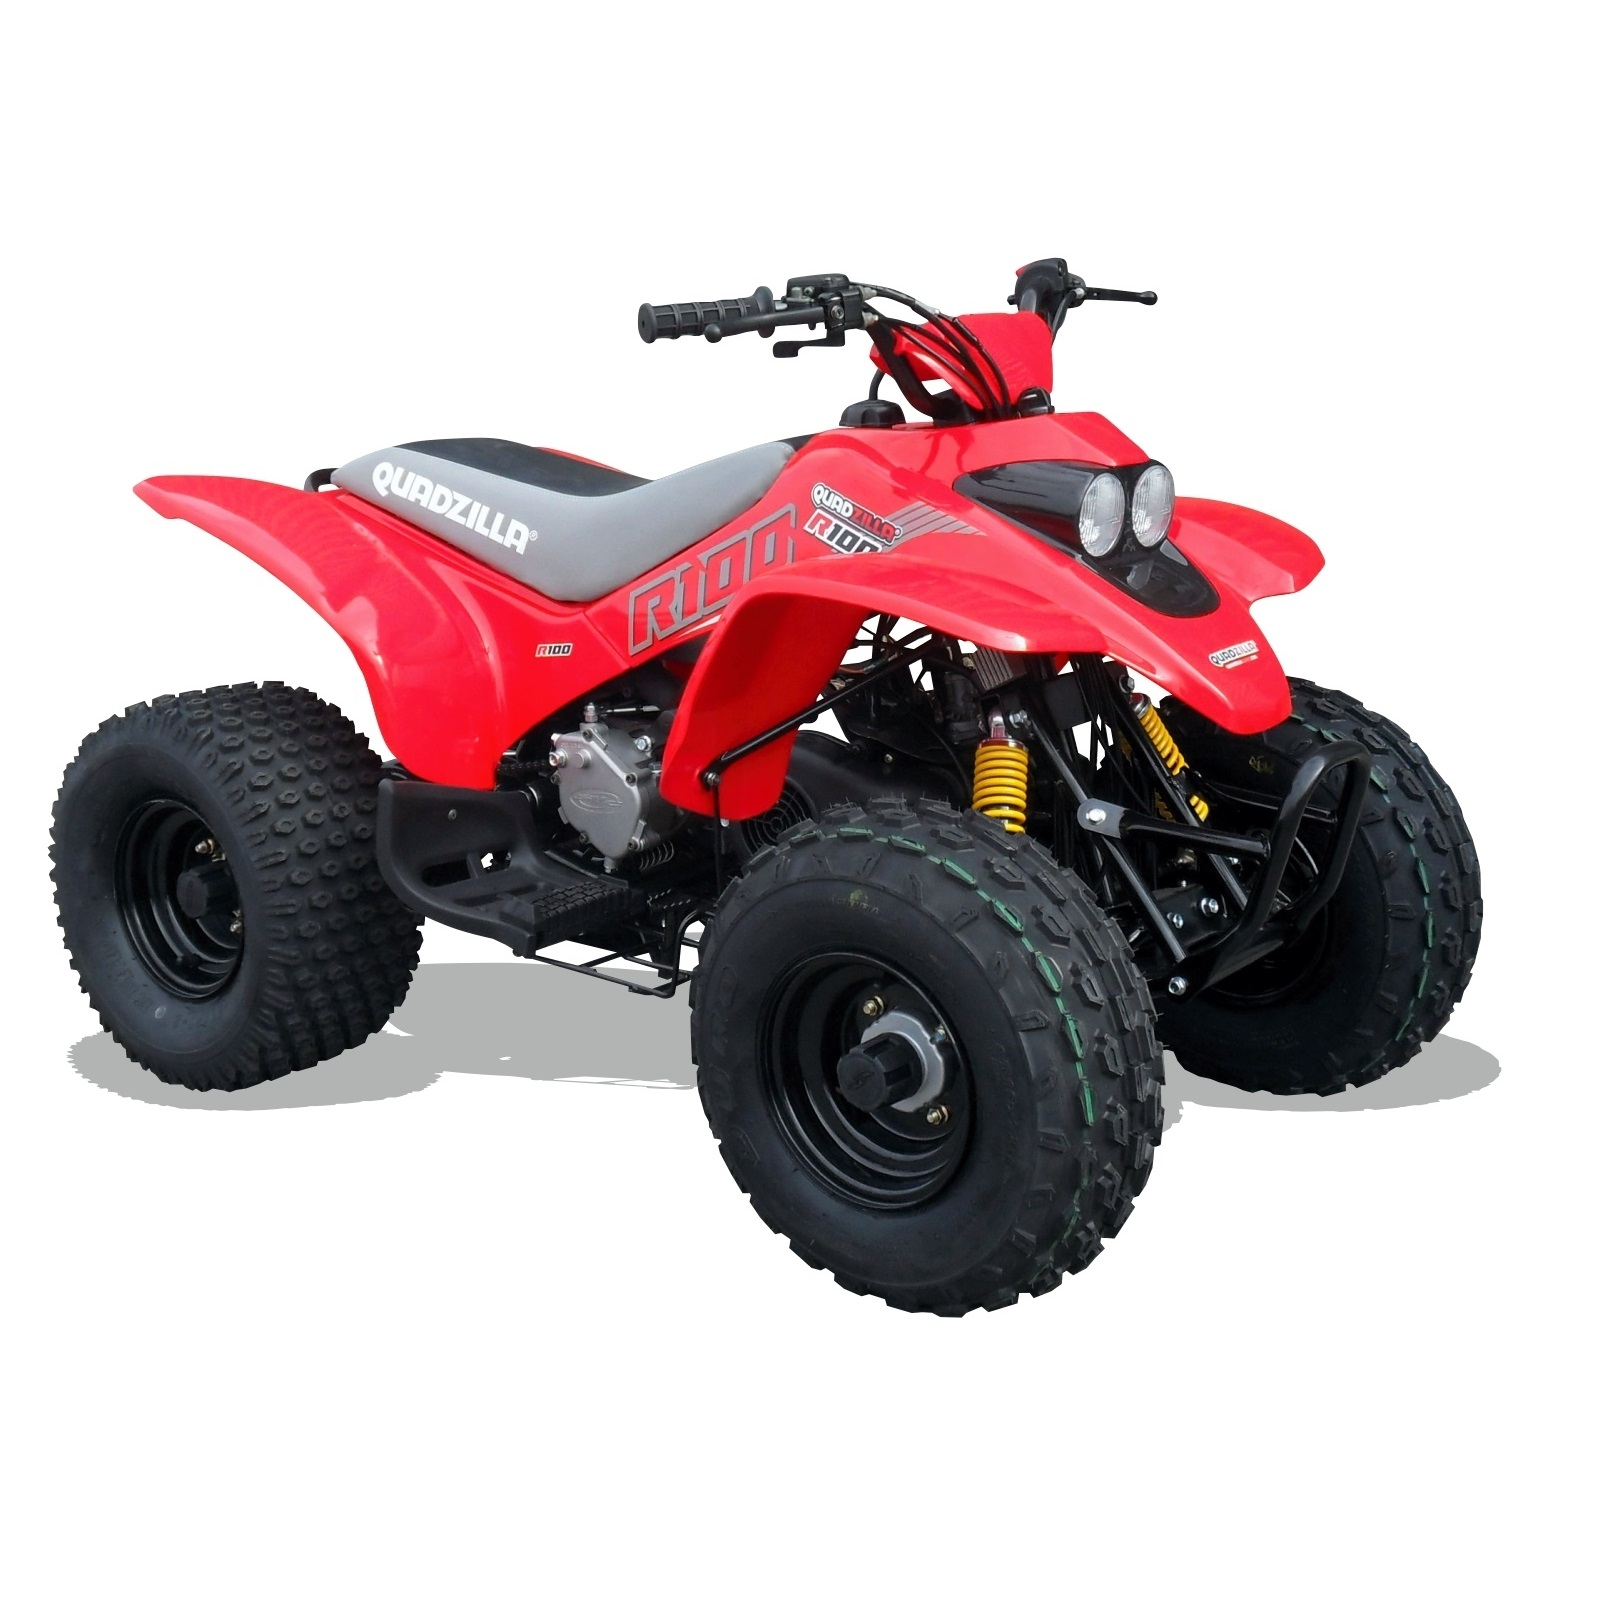 QUADZILLA 2015 R100 RED